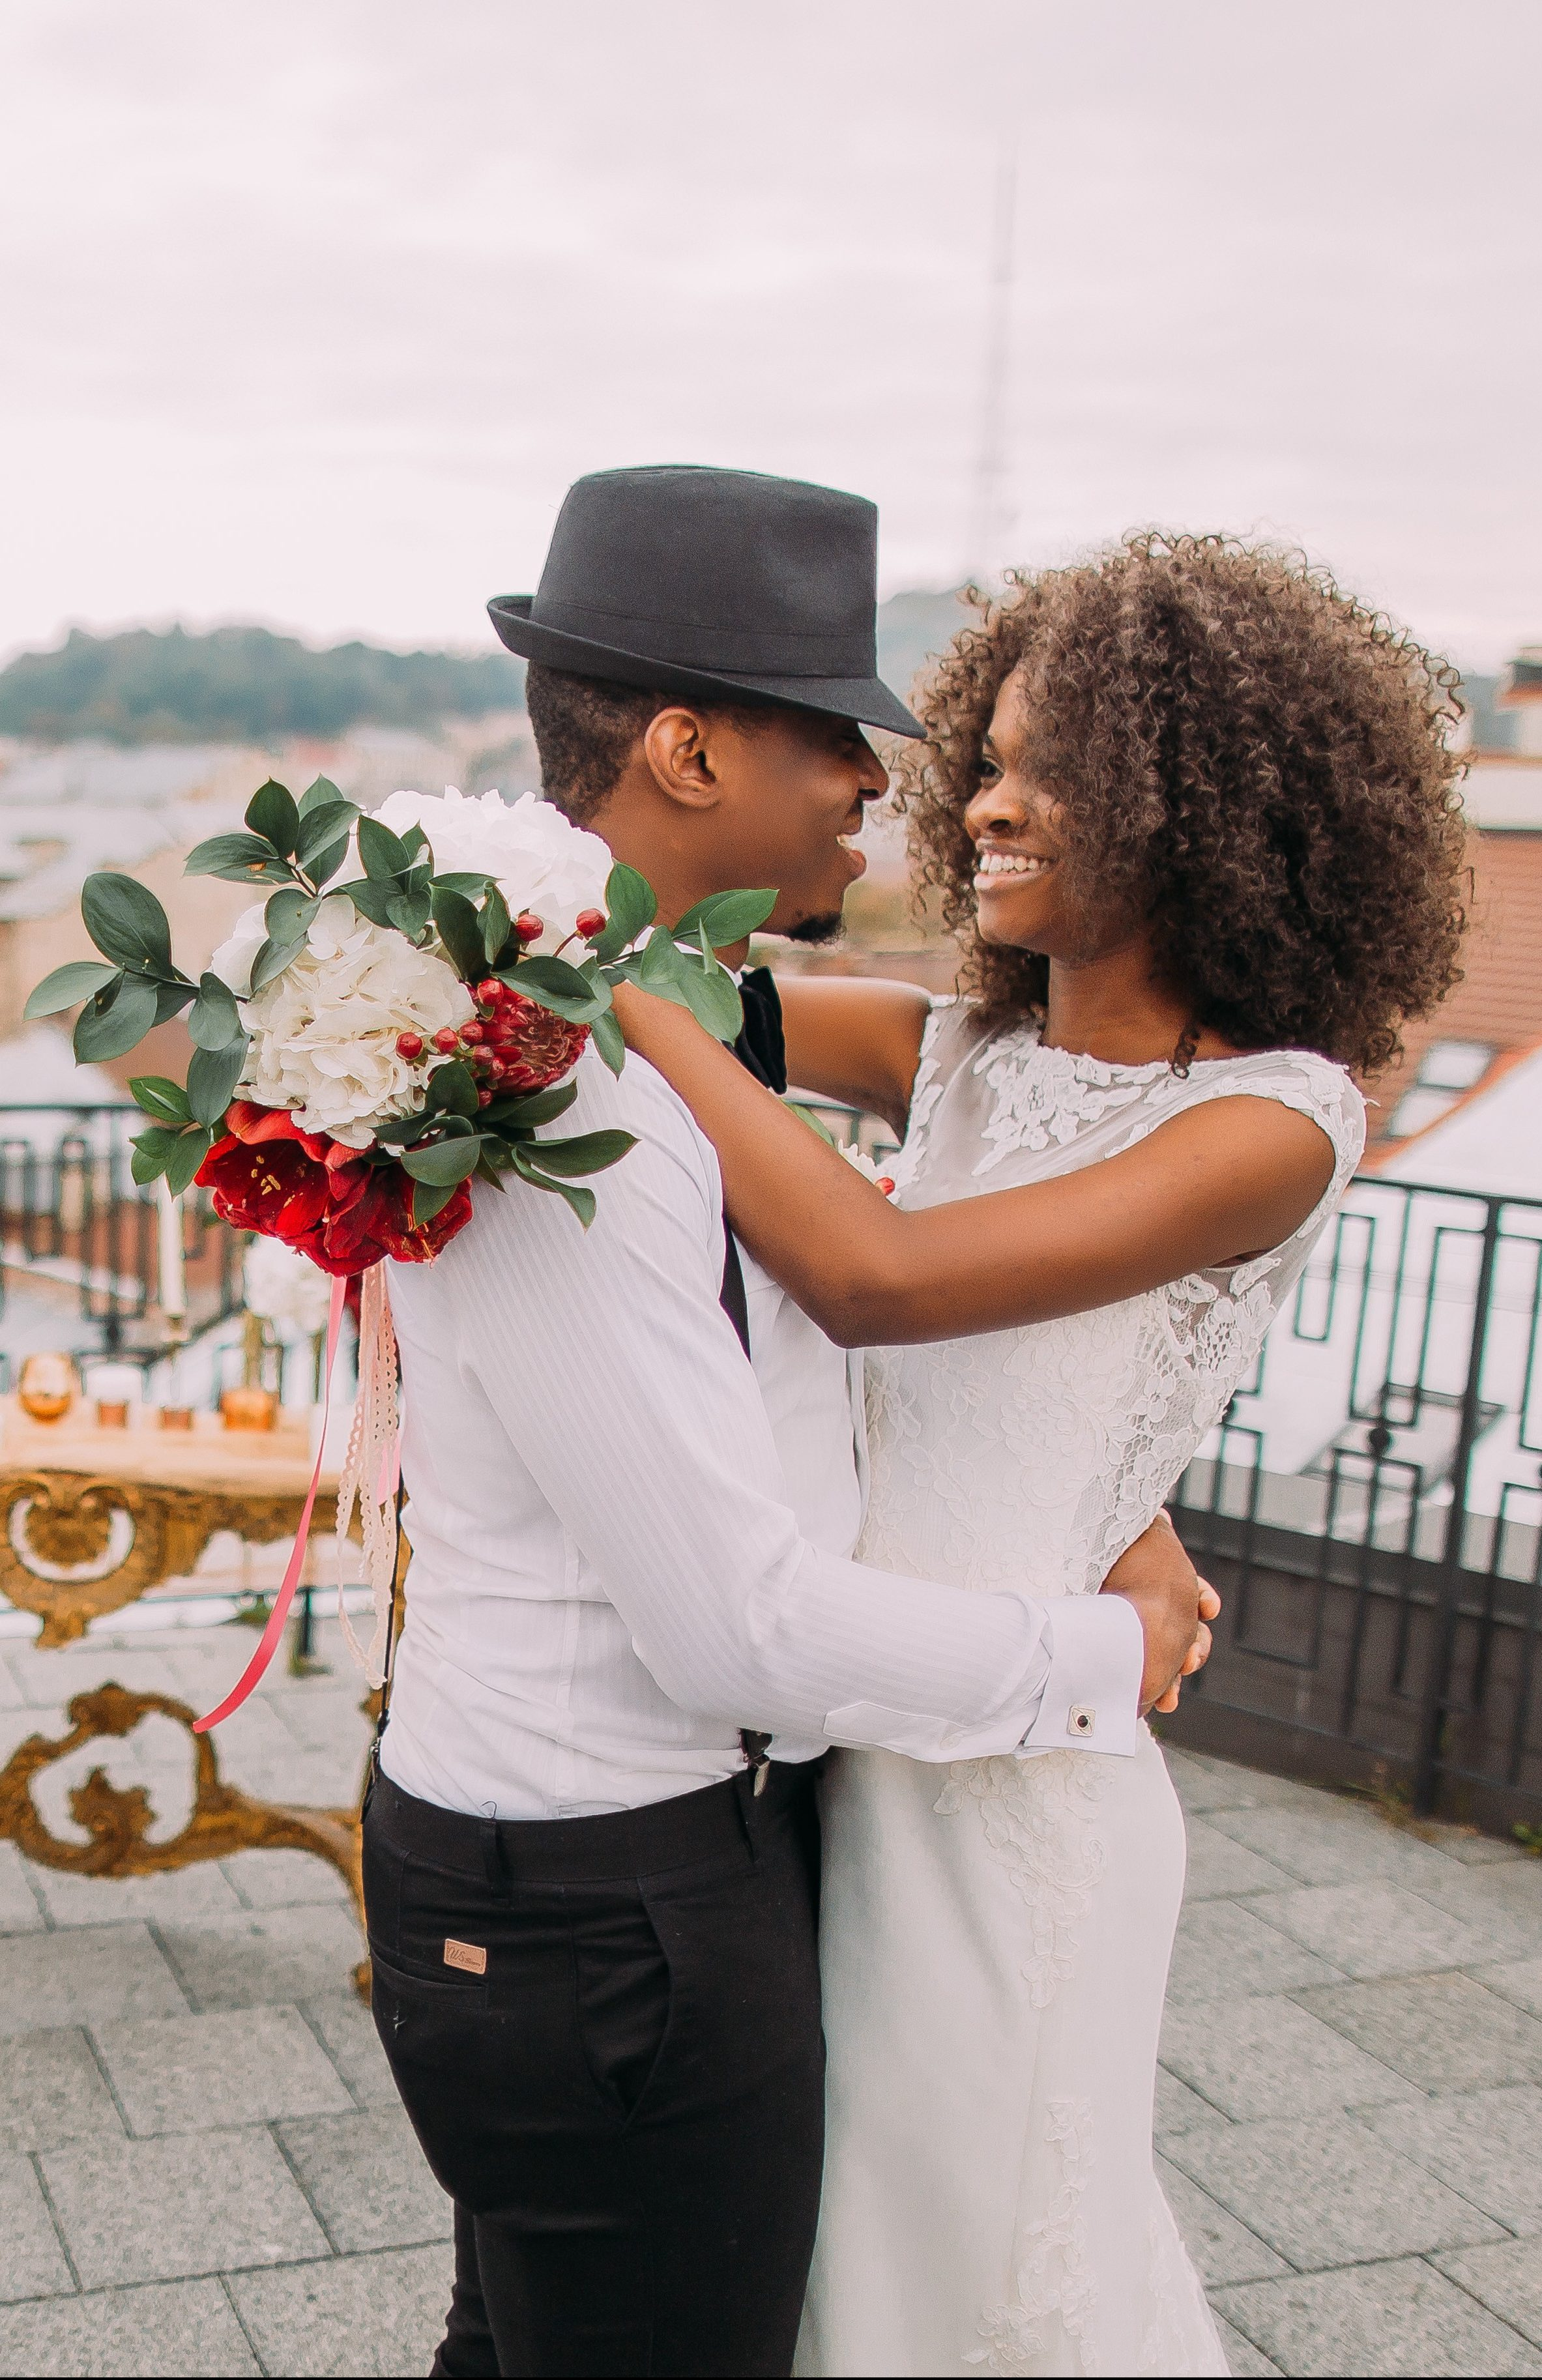 Top Wedding Songs to Dance To